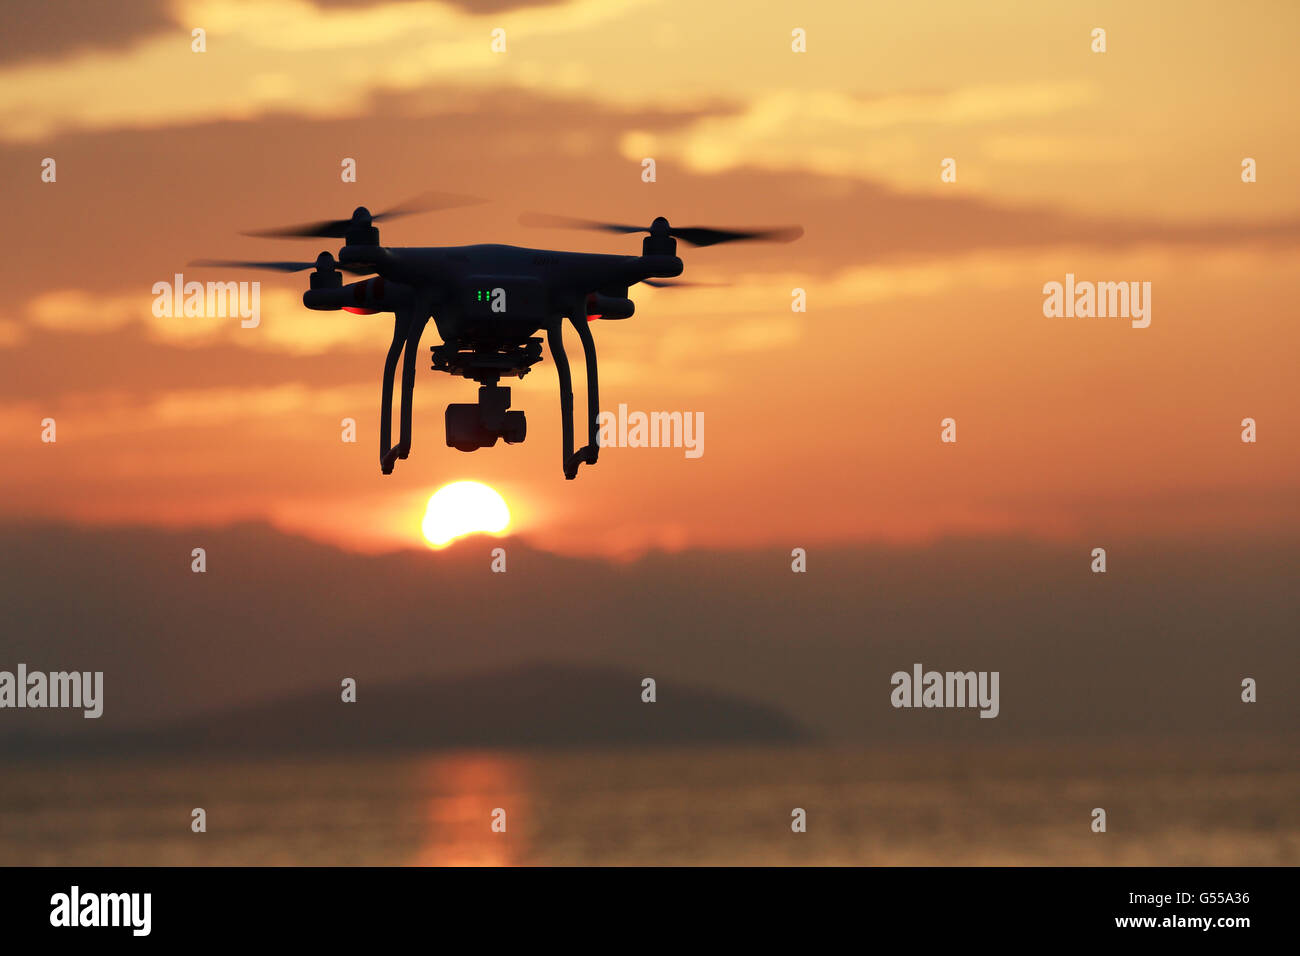 Drone flying against a sunset sky - Stock Image